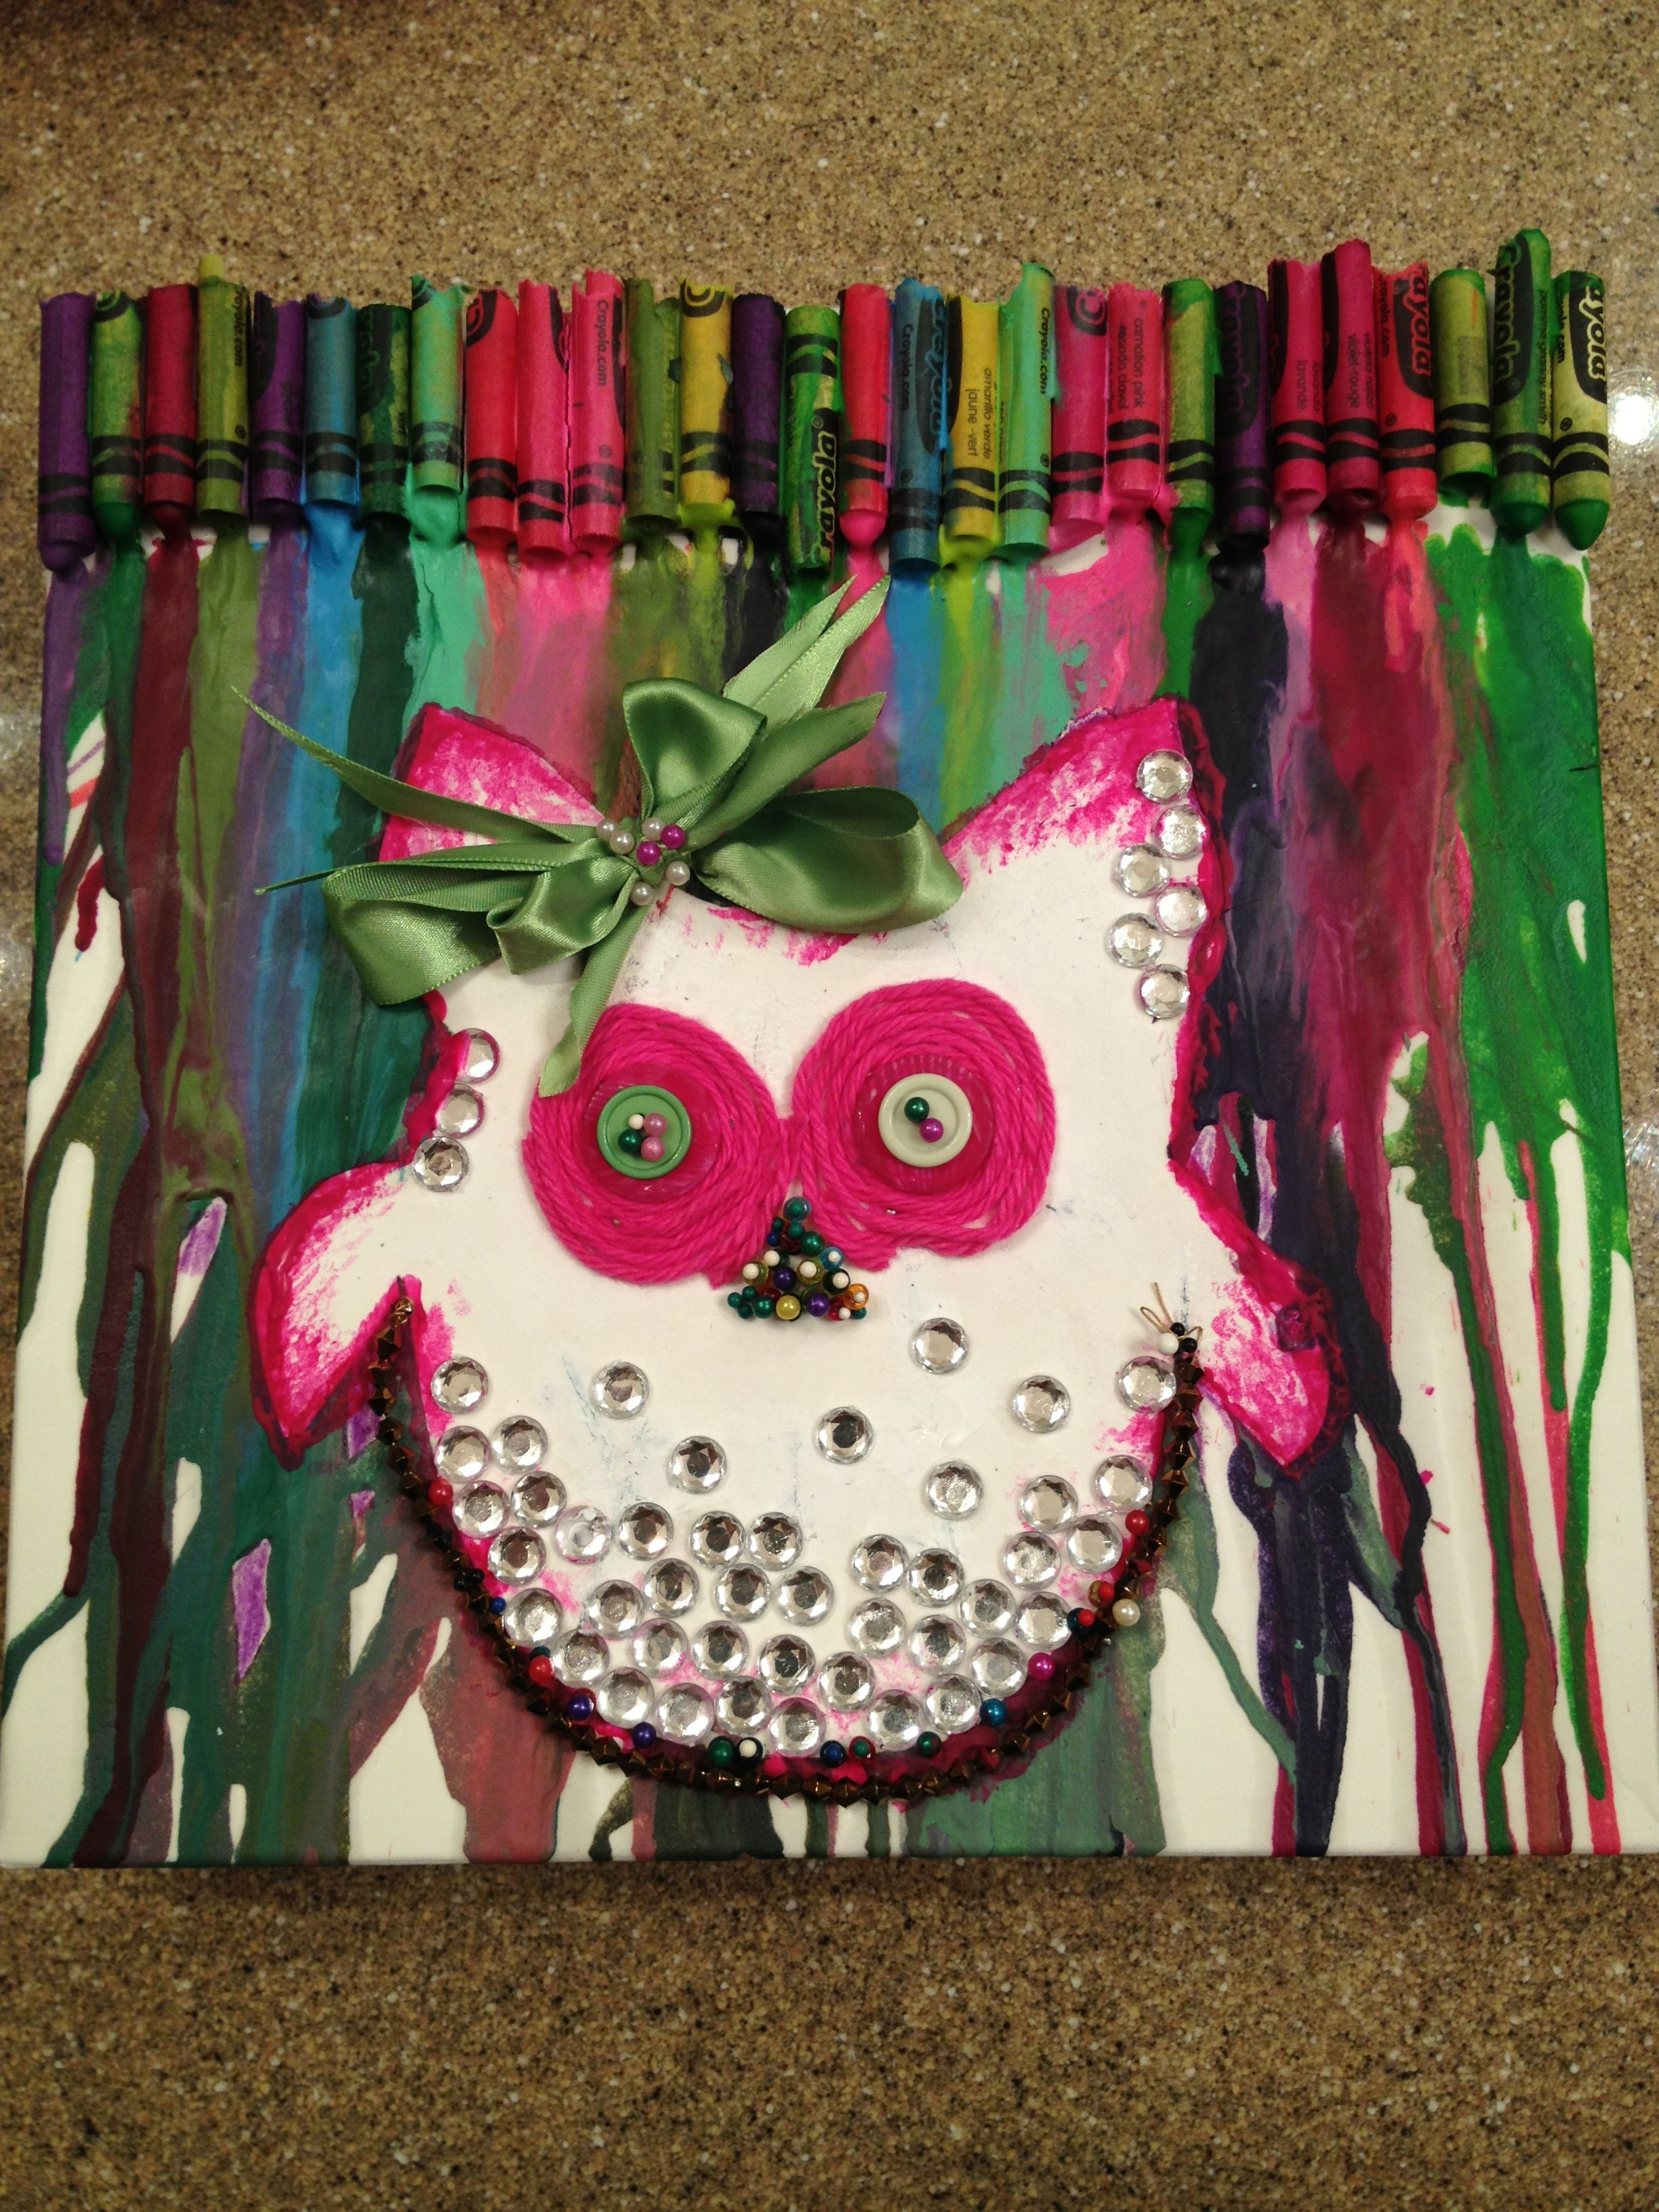 Melted crayons owl craft craft ideas pinterest owl crafts melted crayons owl craft jeuxipadfo Image collections